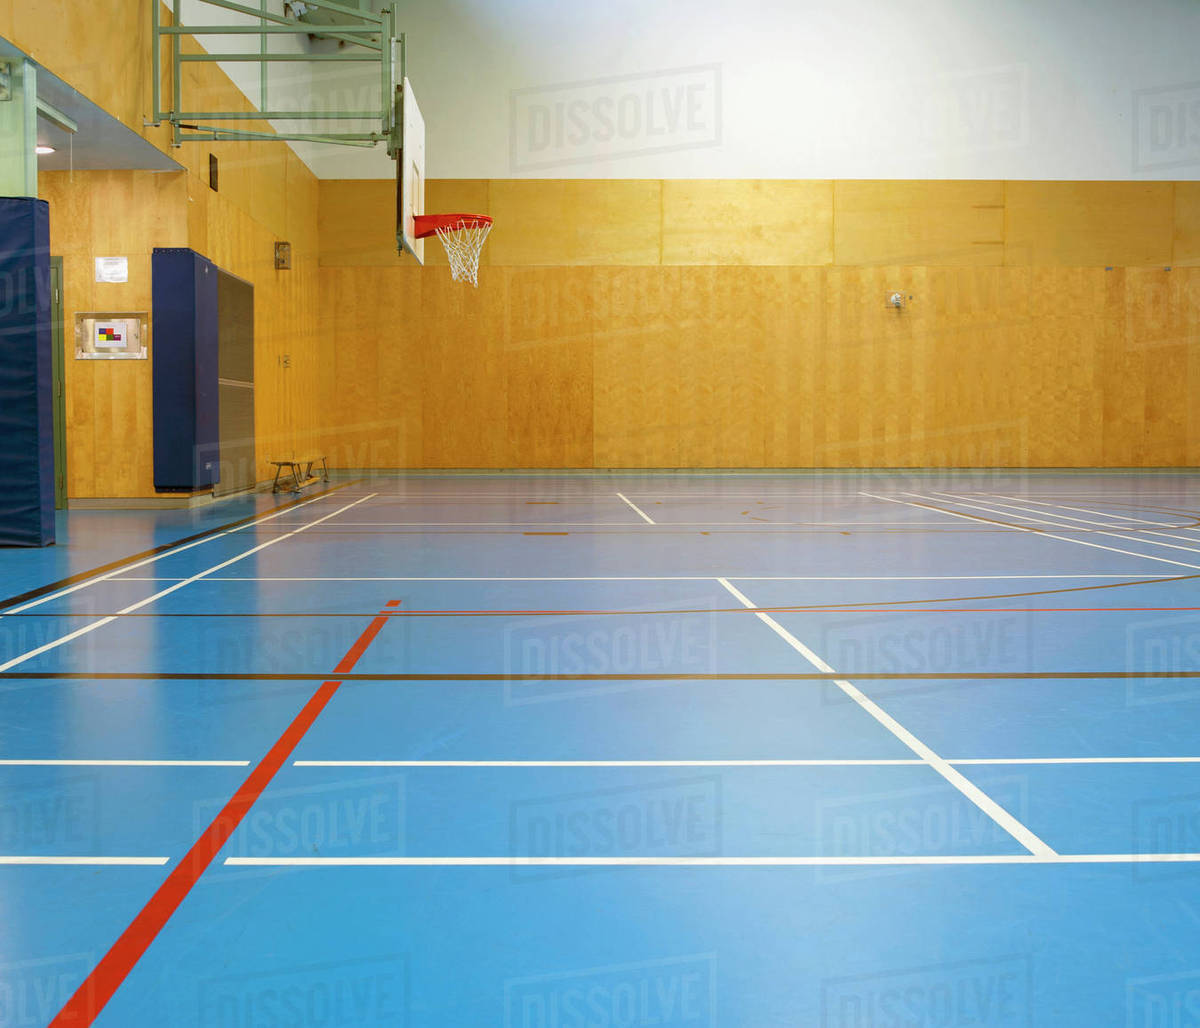 Empty indoor basketball court - Stock Photo - Dissolve